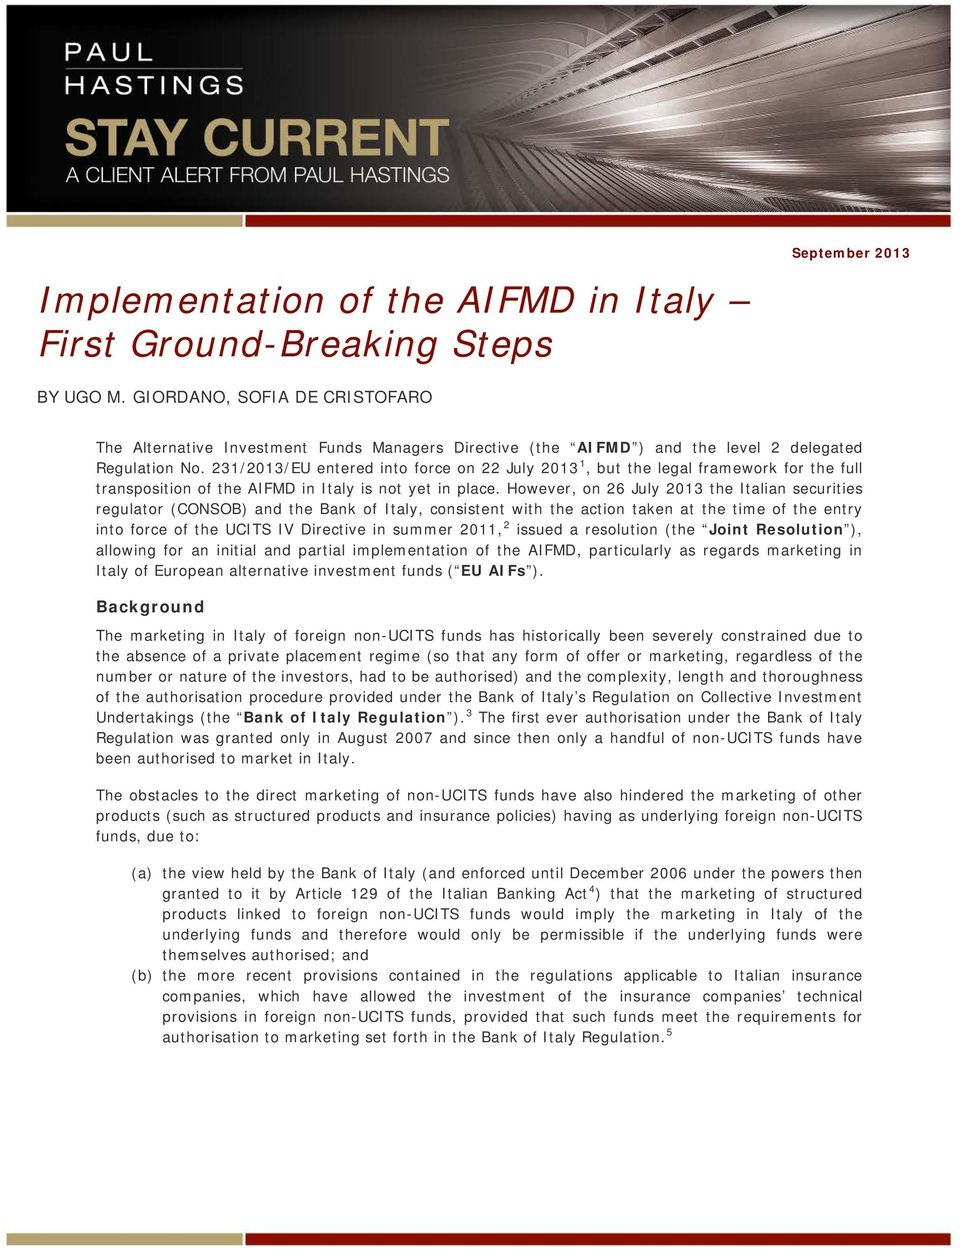 231/2013/EU entered into force on 22 July 2013 1, but the legal framework for the full transposition of the AIFMD in Italy is not yet in place.